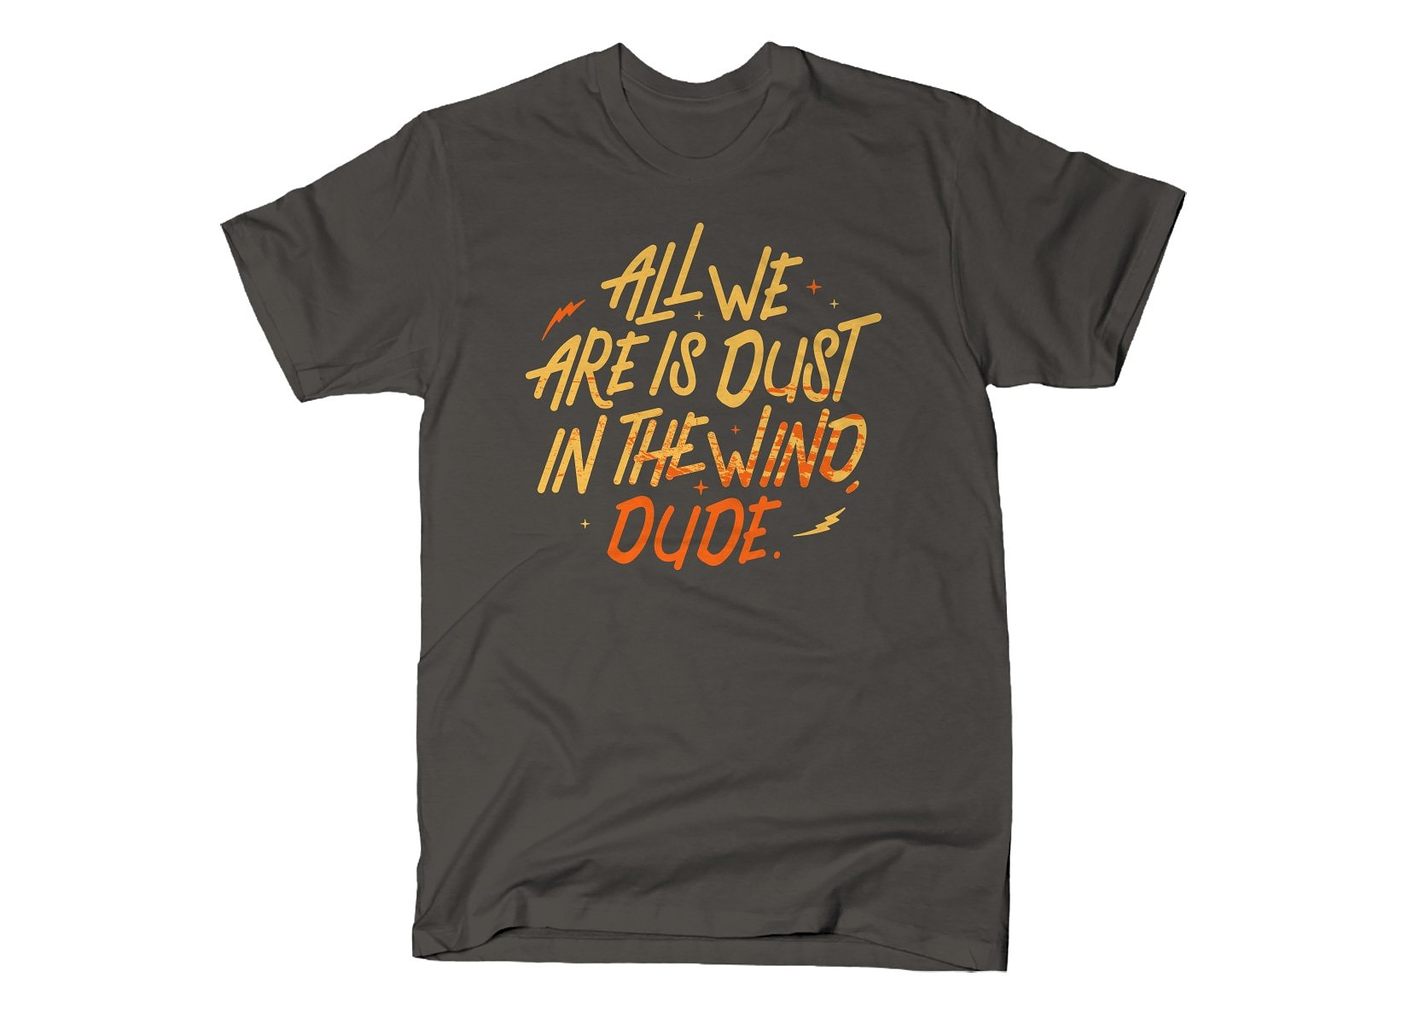 SnorgTees: All We Are Is Dust In The Wind, Dude